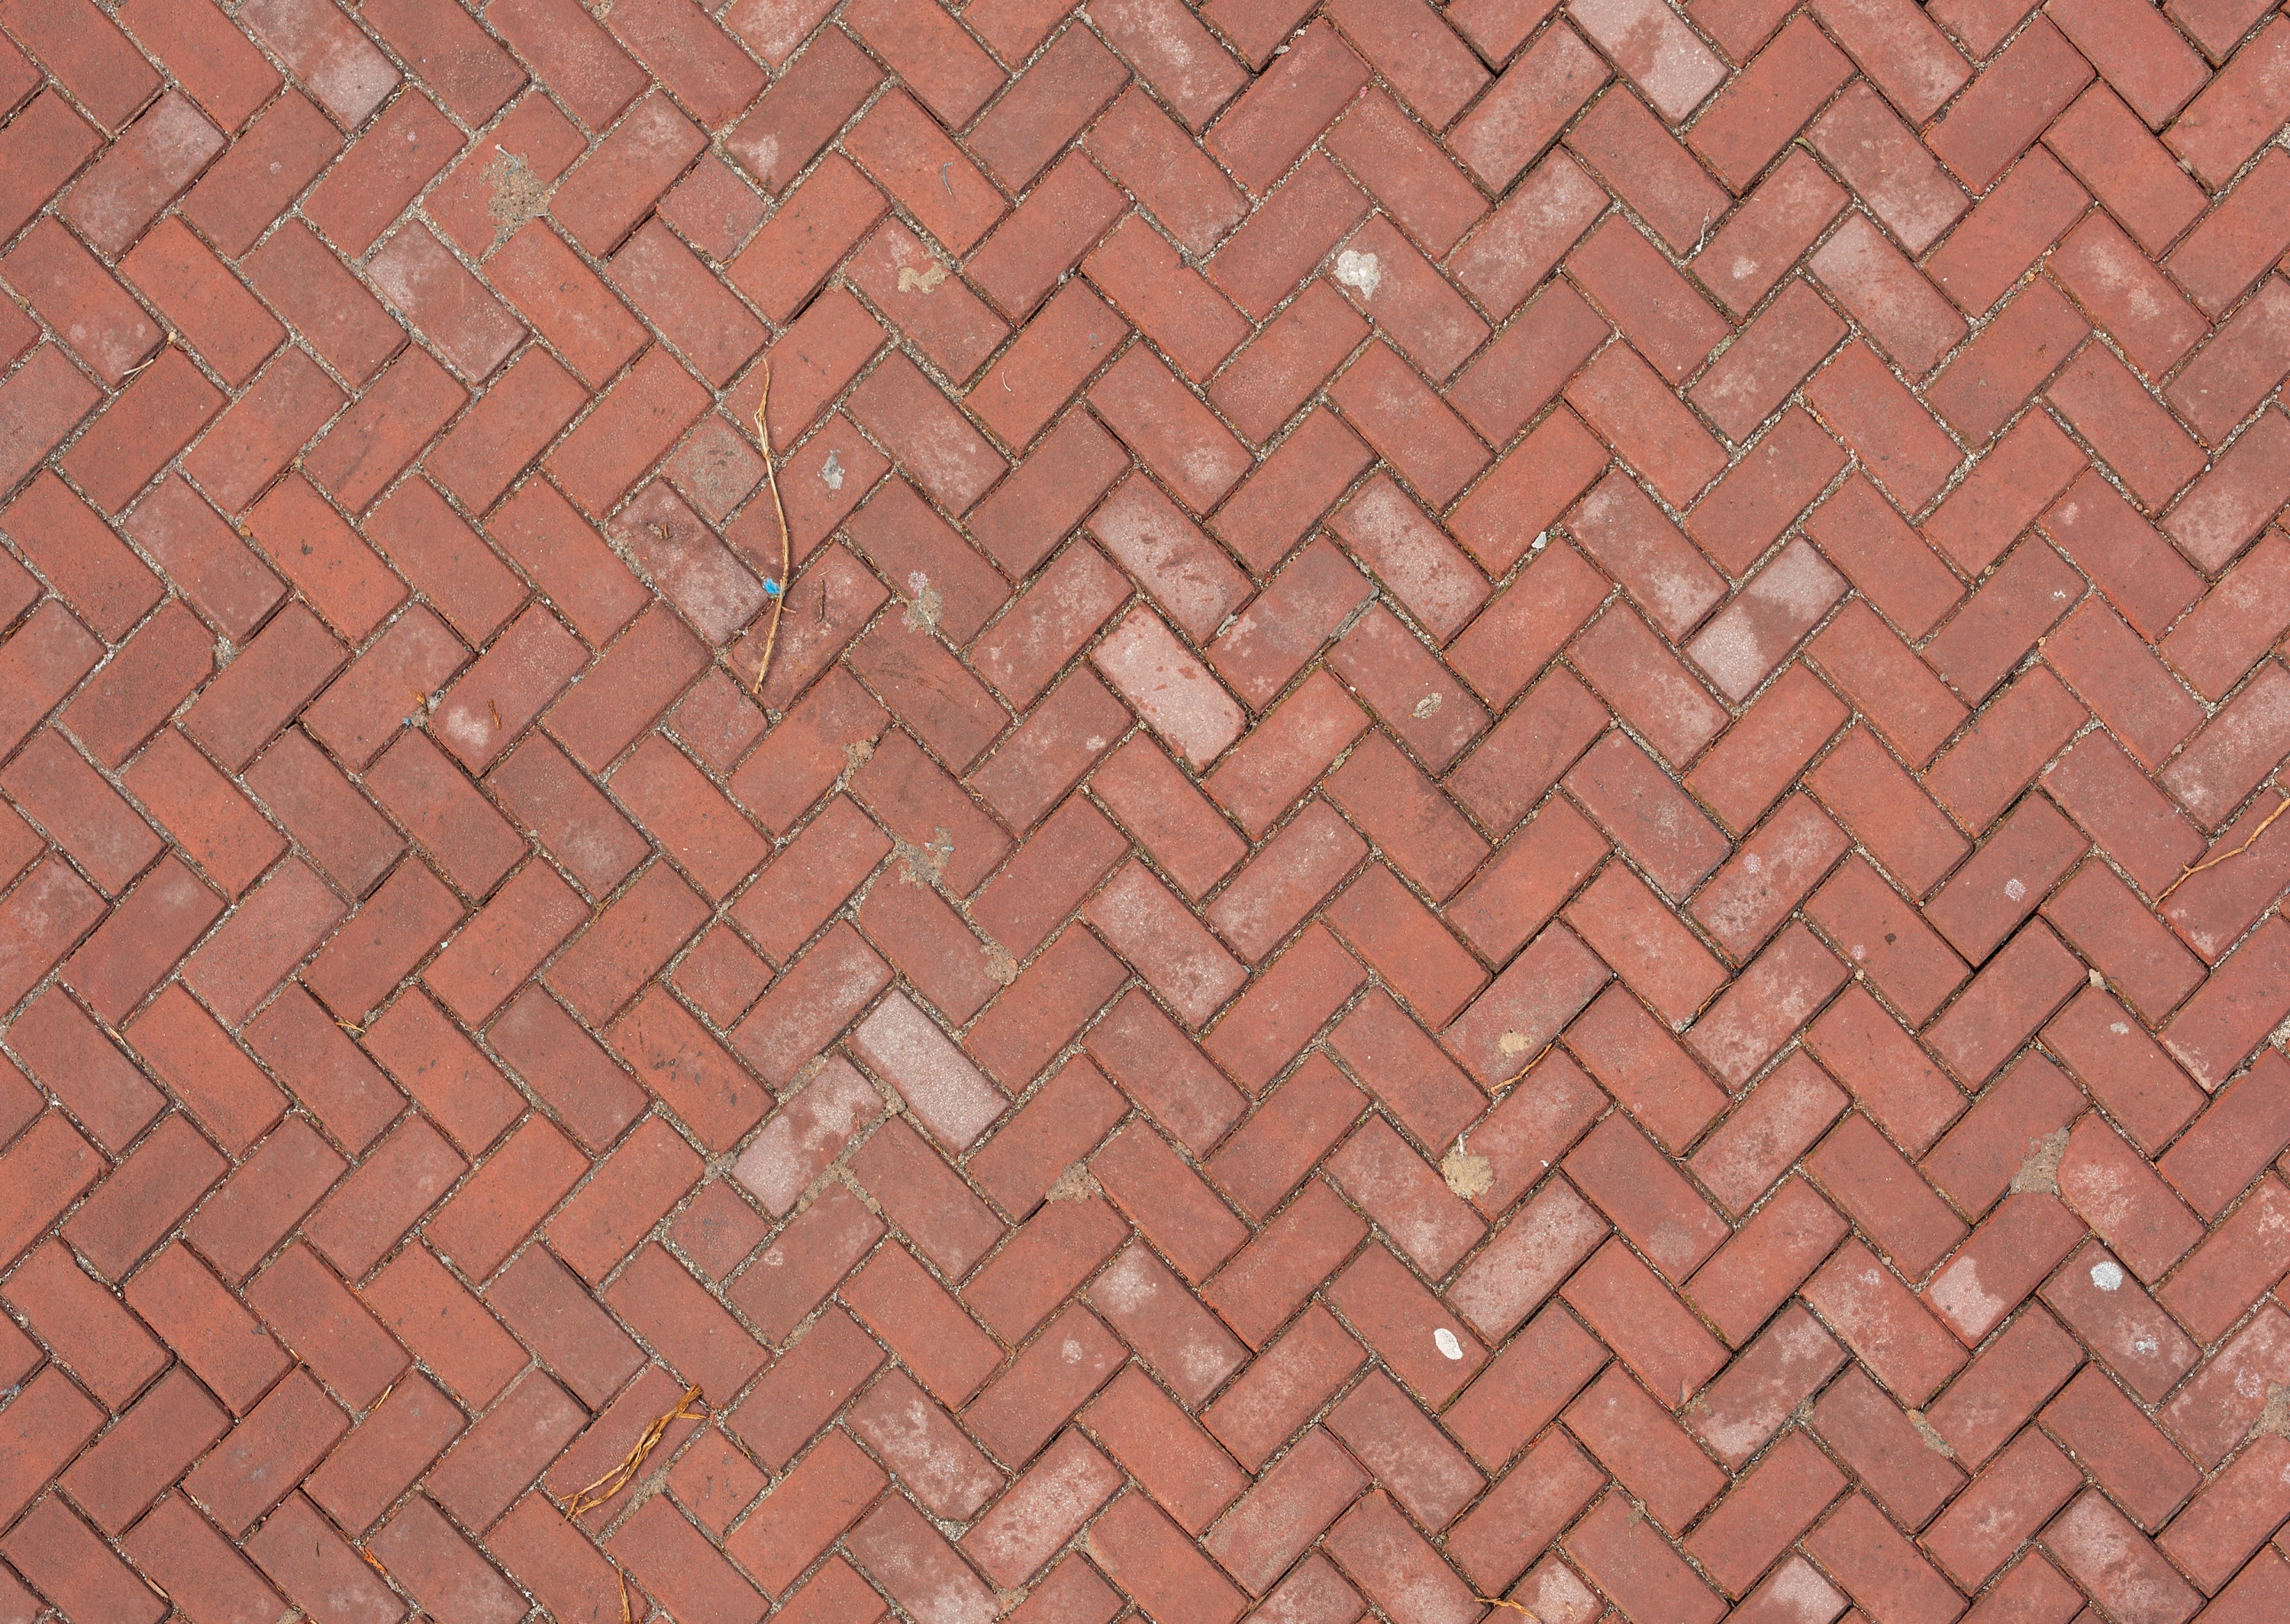 stone floor tile texture. stone floor texture free image  stones Stone and backgrounds download photos